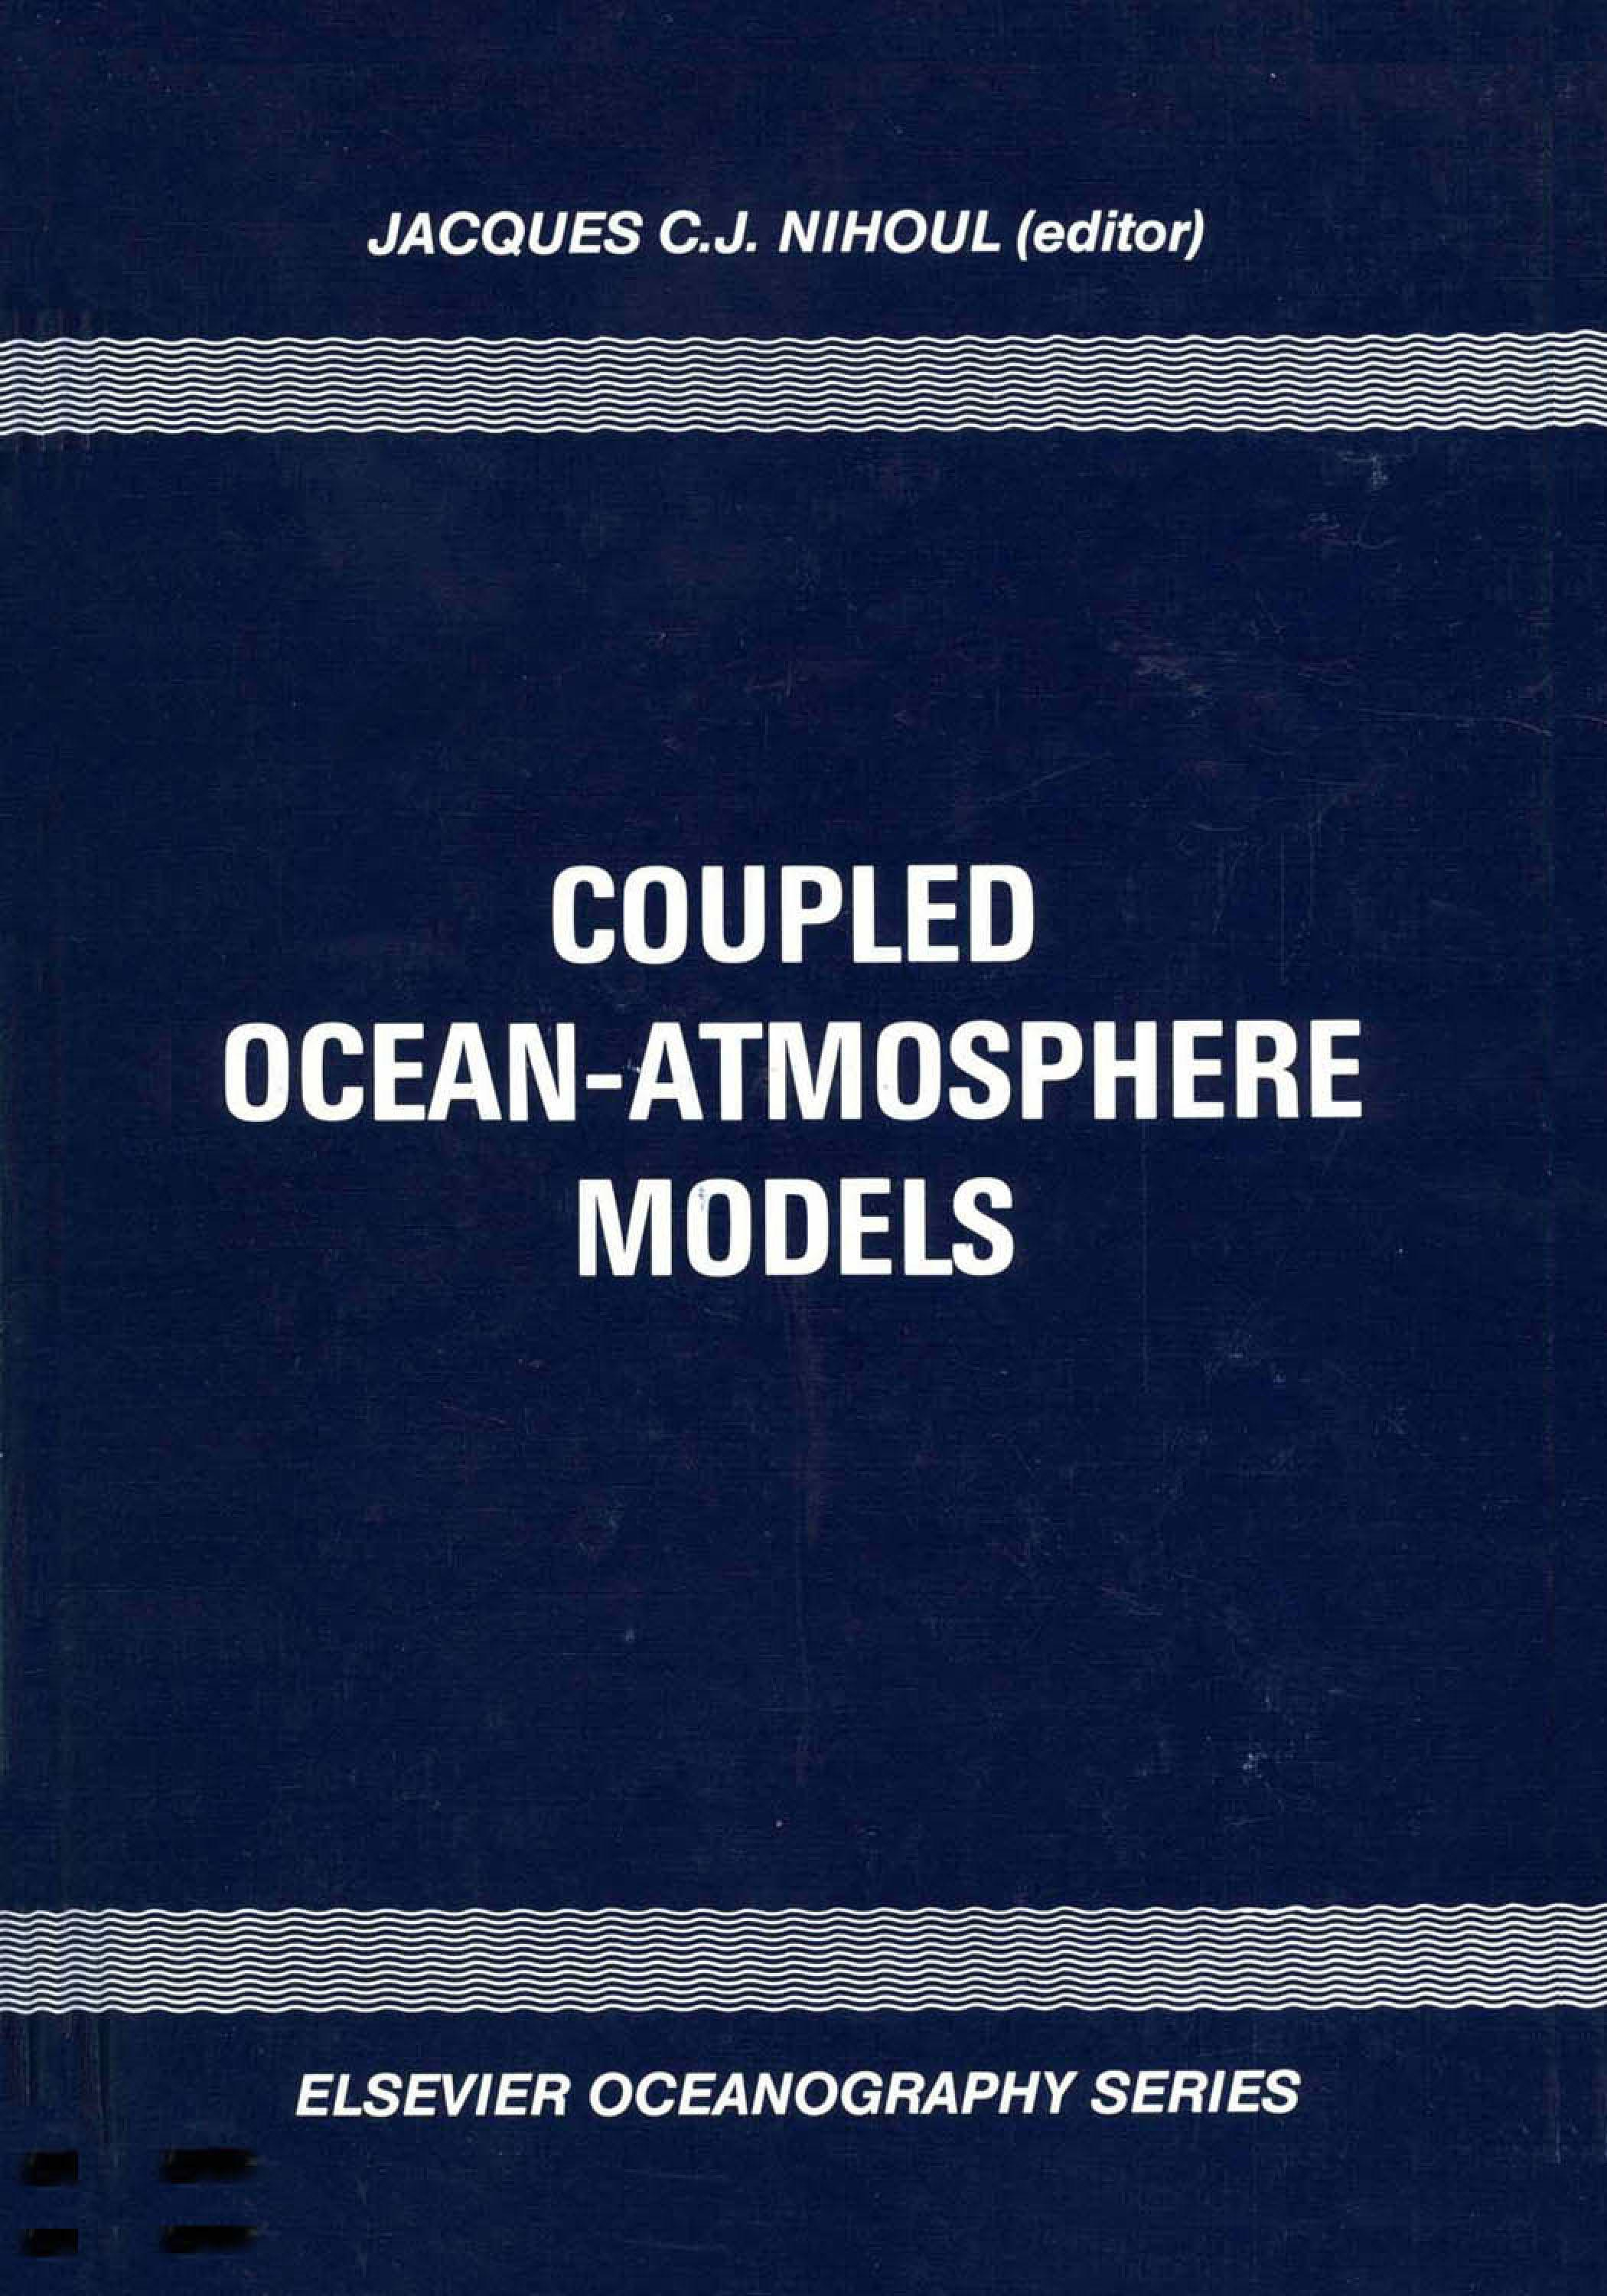 Coupled Ocean-Atmosphere Models